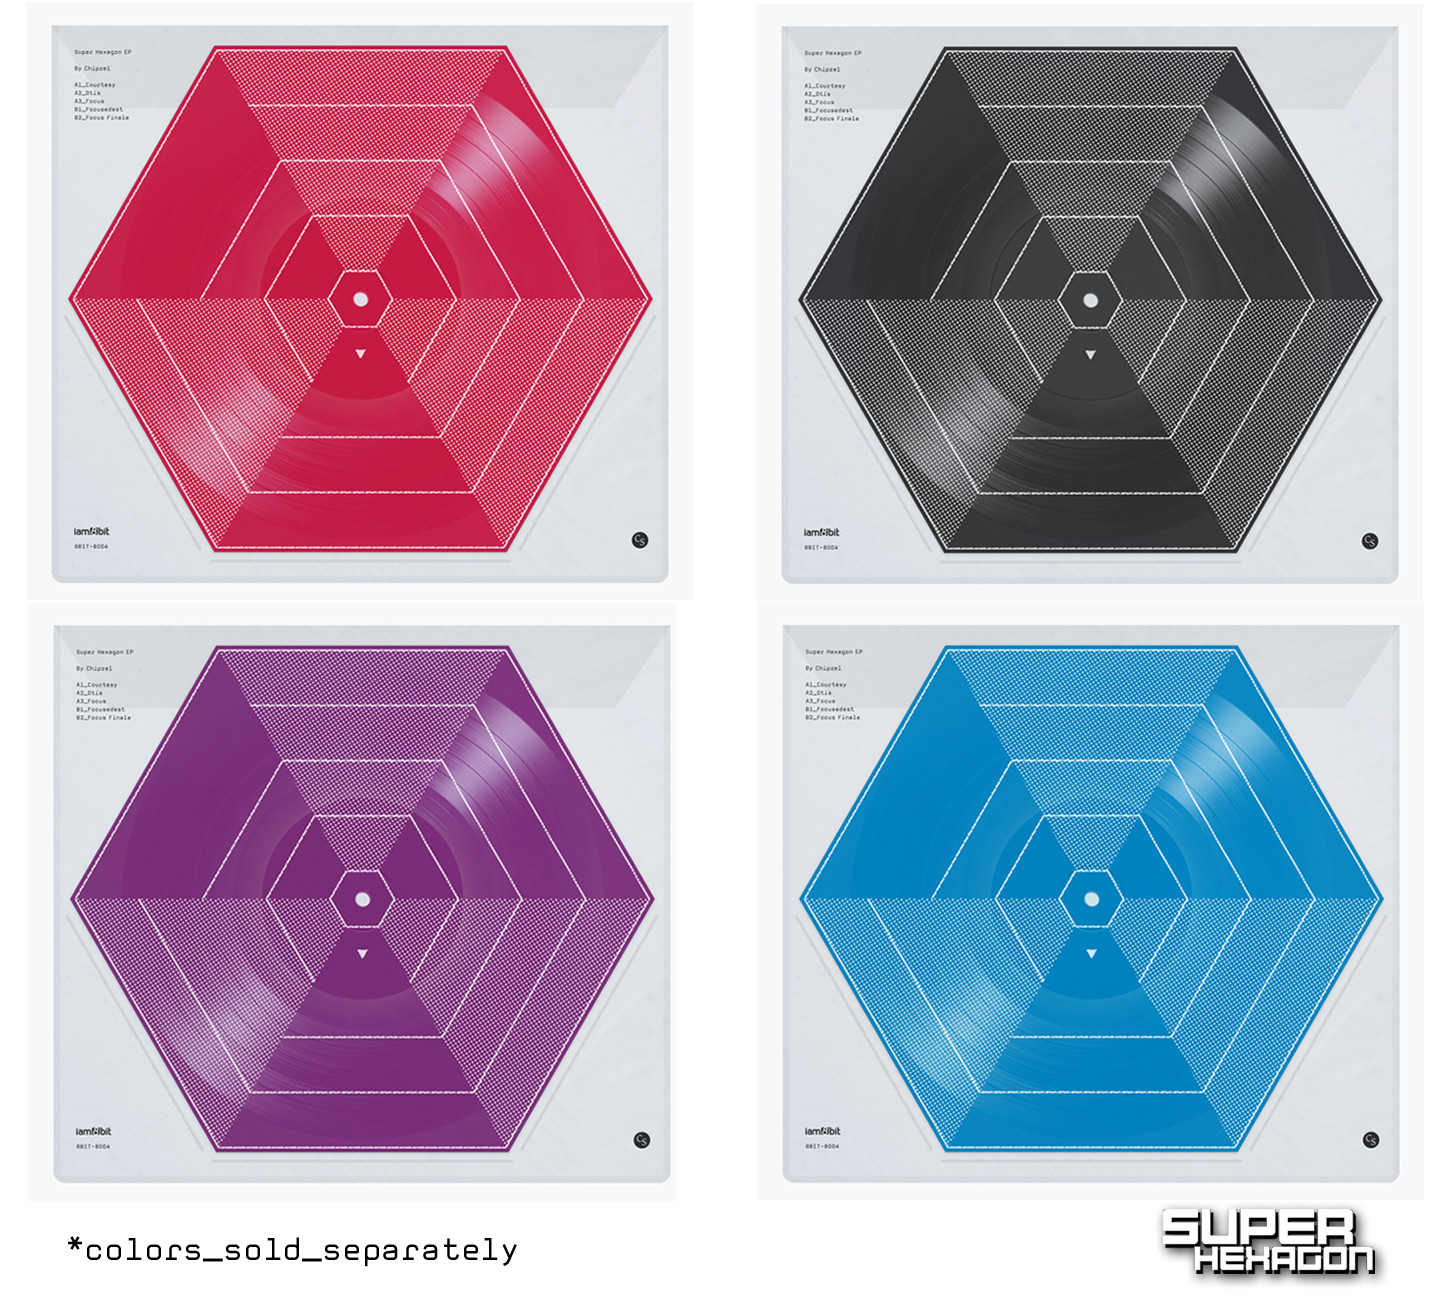 Super Hexagon - Mockup